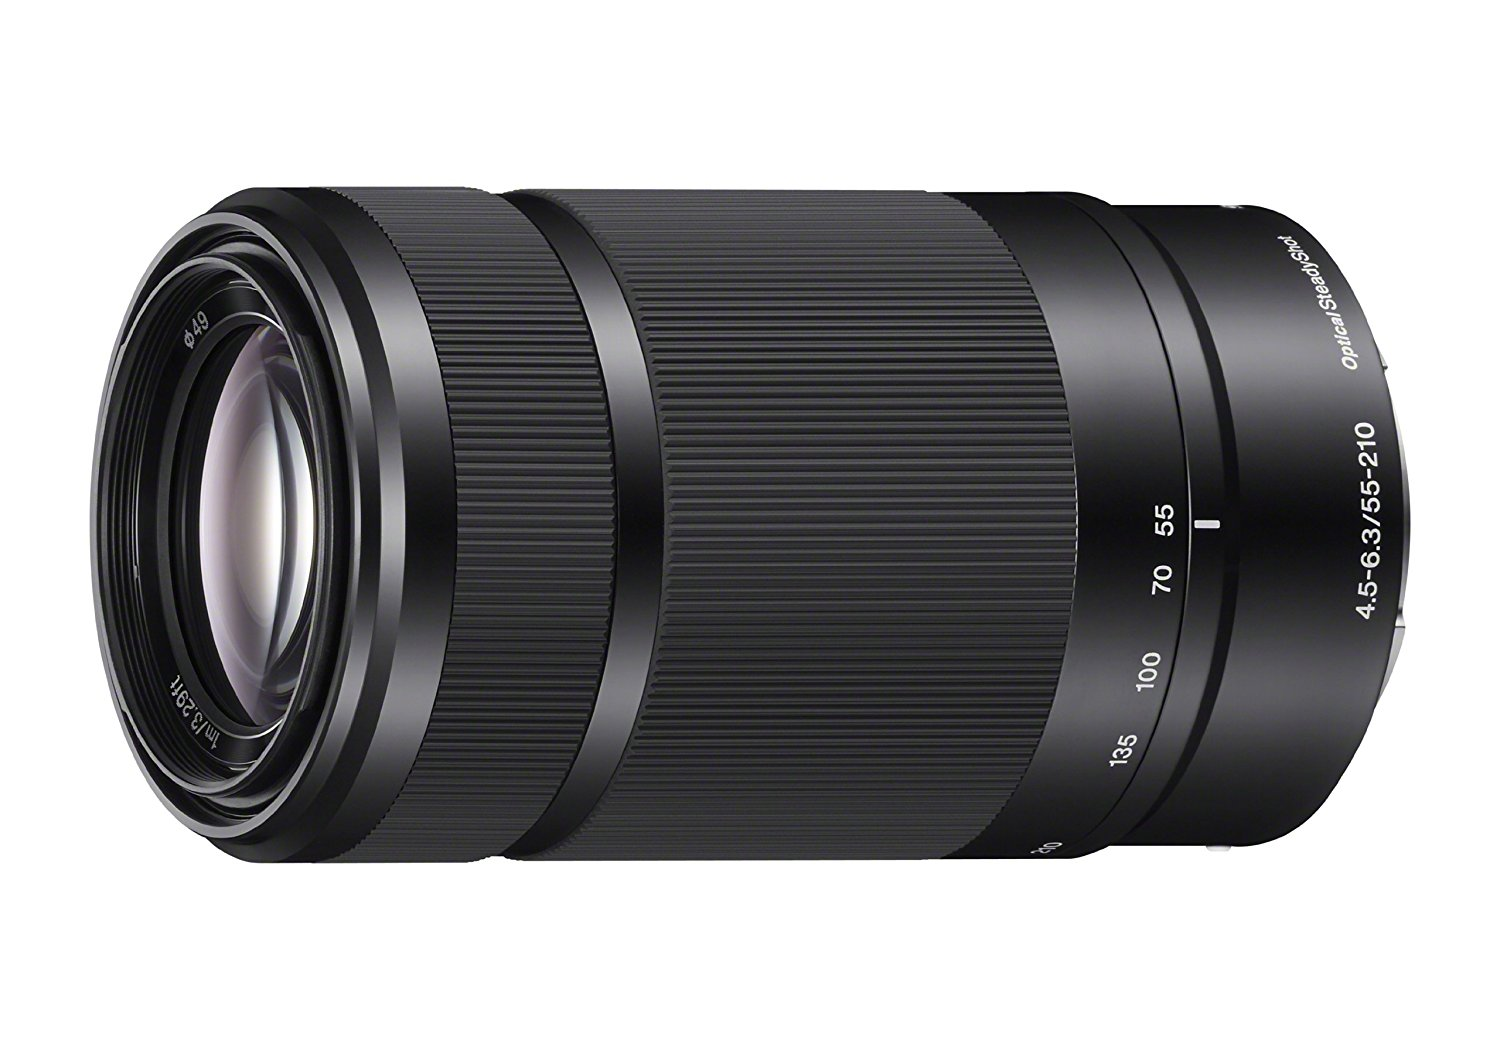 Sony SEL55210 55 mm - 210 mm f/4.5 - 6.3 Full Frame Sensor Telephoto Lens for Sony E - Designed for Camera - 49 mm Attachment - 1x Magnification - 3.8x Optical Zoom - Optical IS